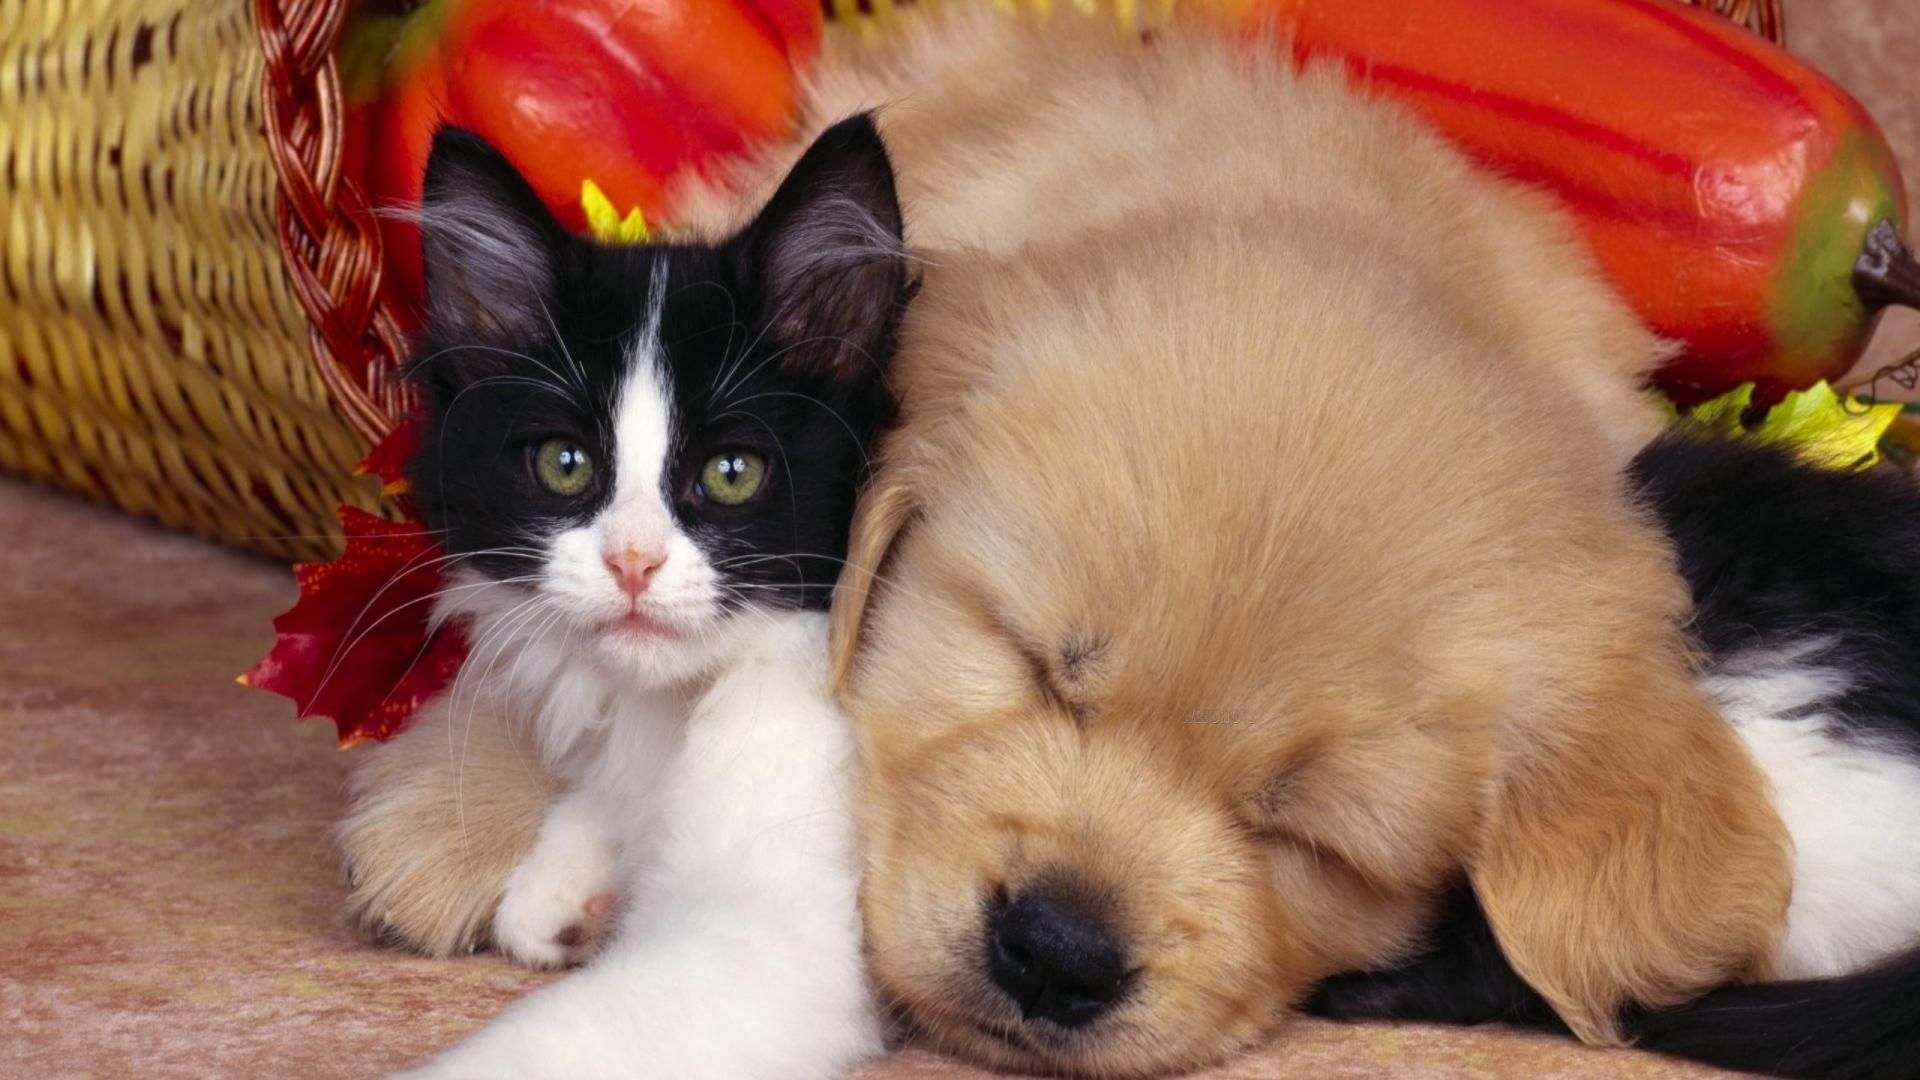 Can Someone Wake My Friend Up Please Comme Chien Et Chat